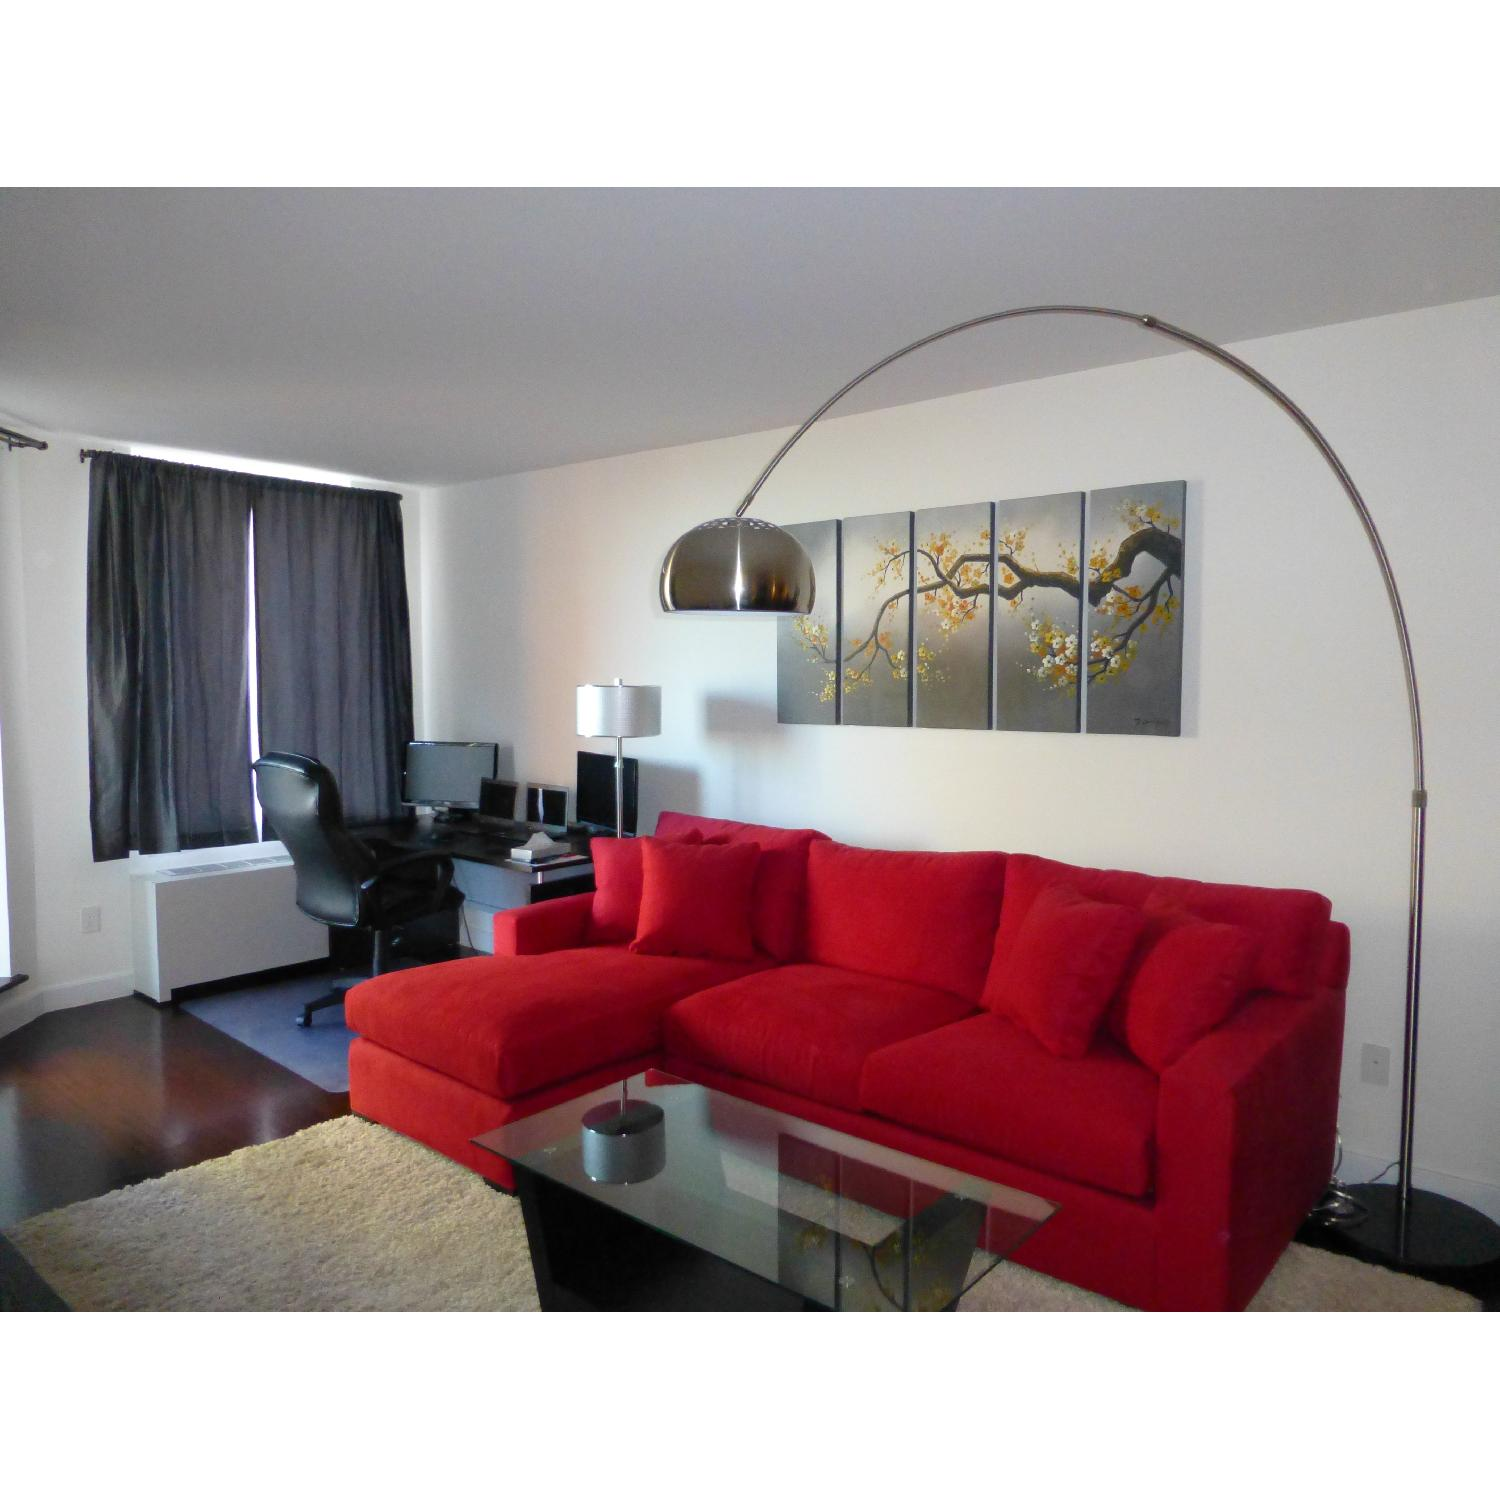 Crate & Barrel Red 2-Piece Sectional Sofa - image-3